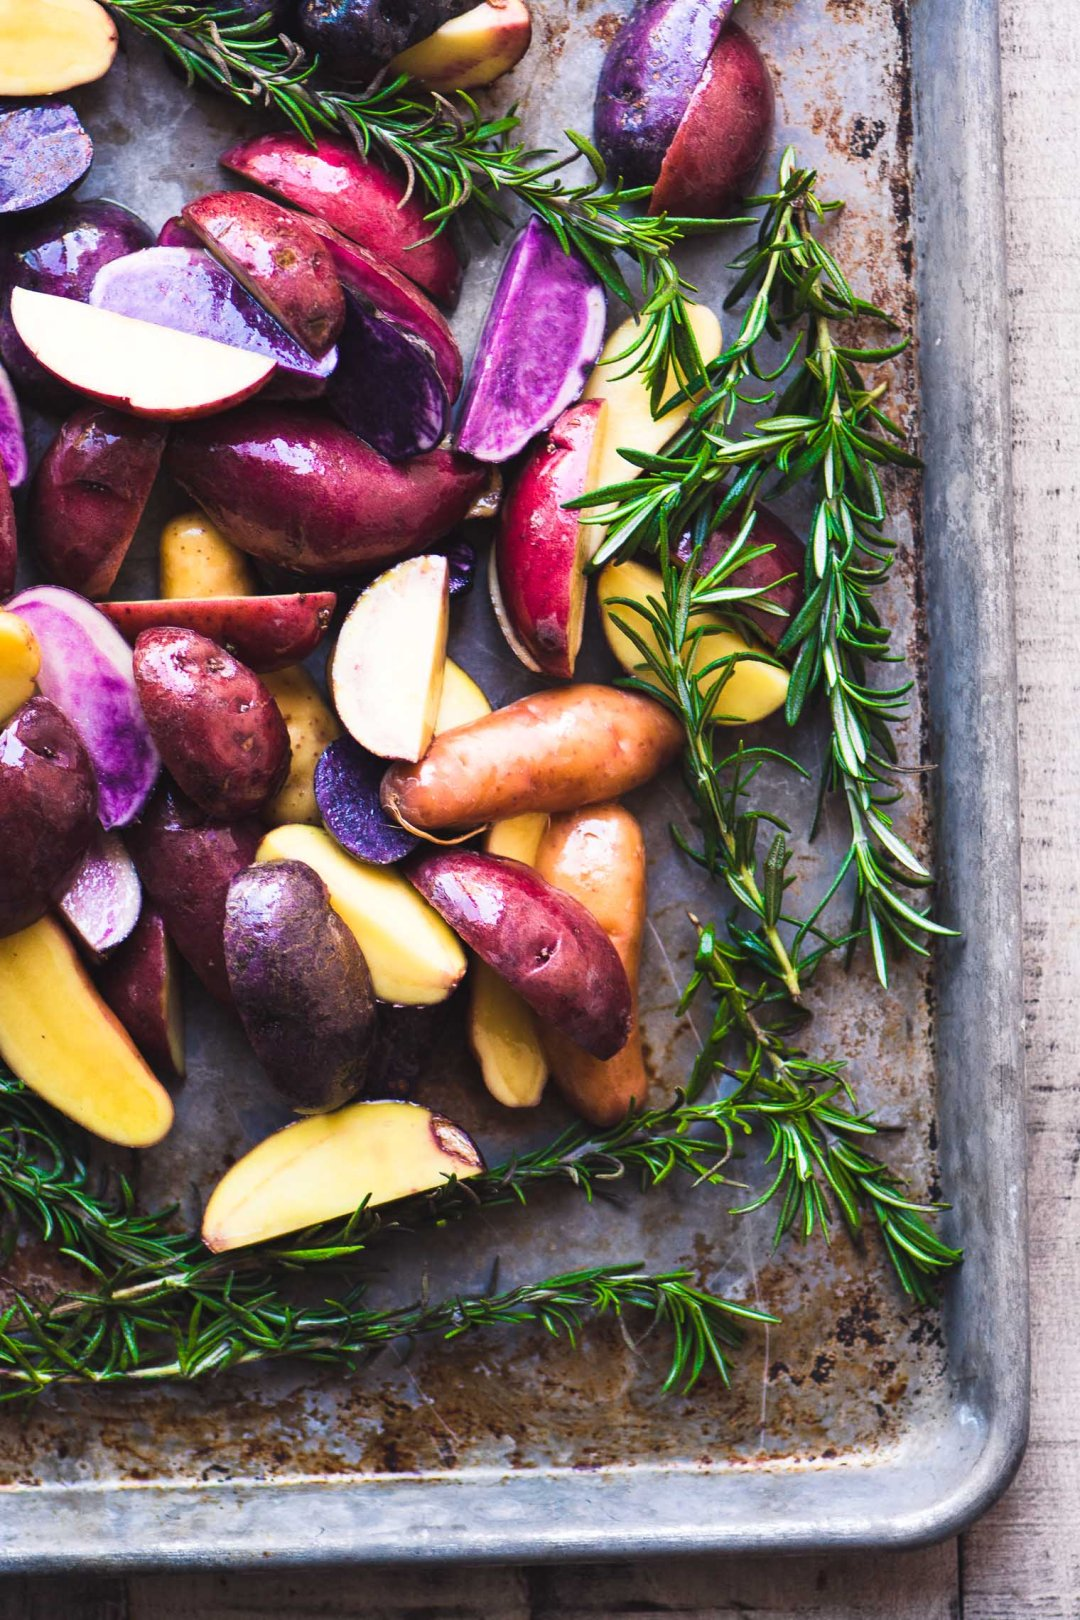 Rosemary roasted rainbow potatoes ion a sheet pan